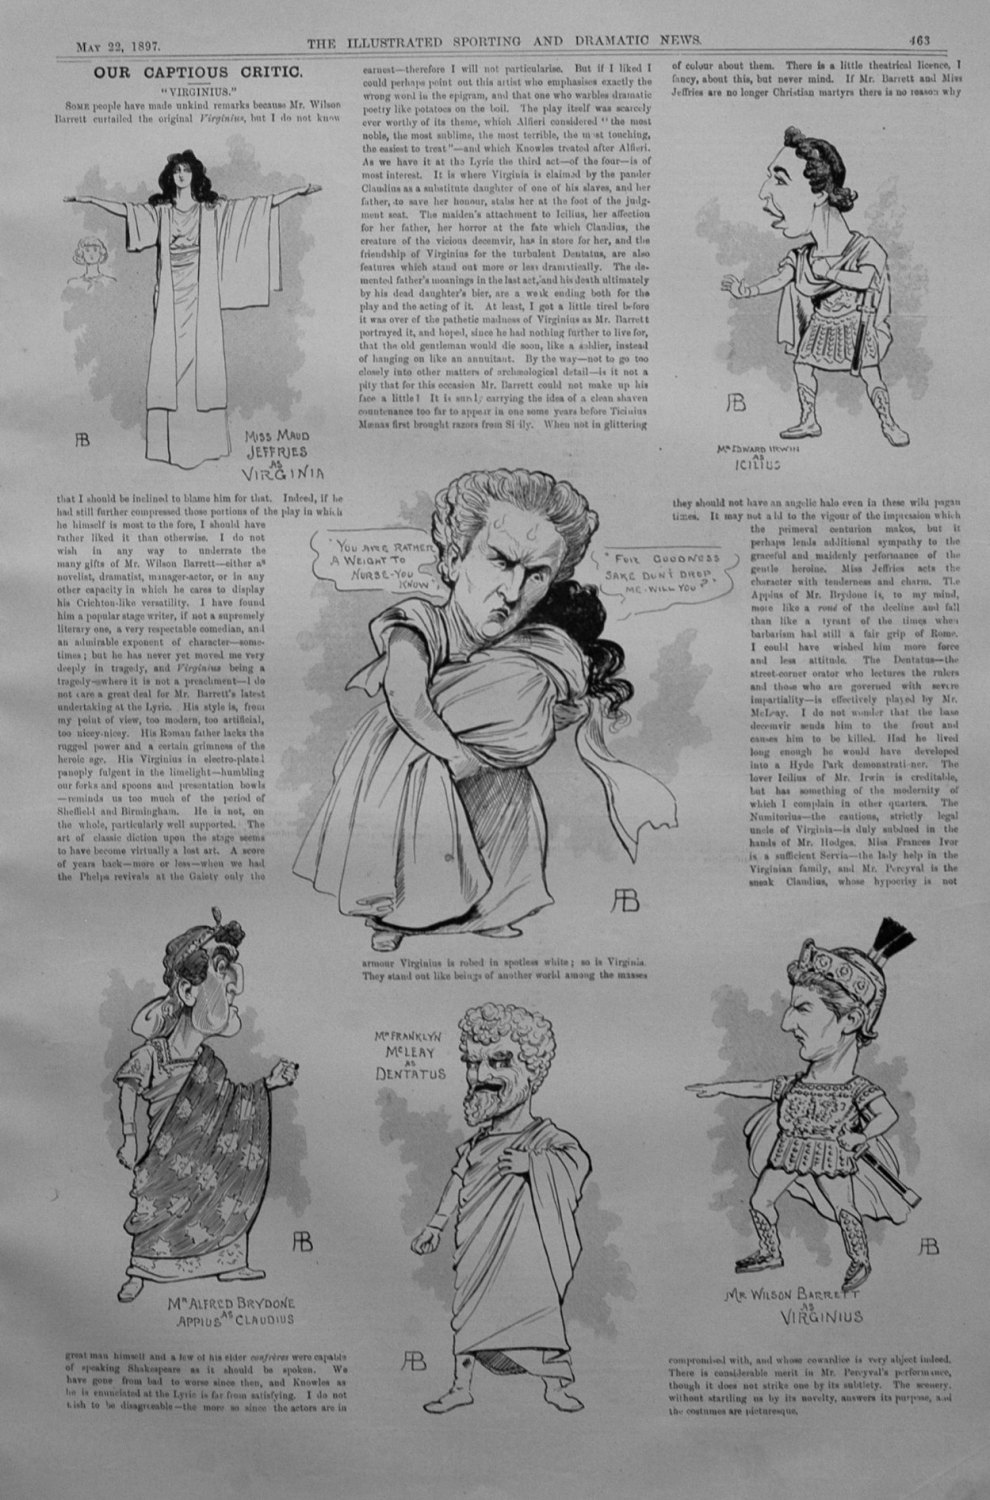 Our Captious Critic, May 22nd 1897.